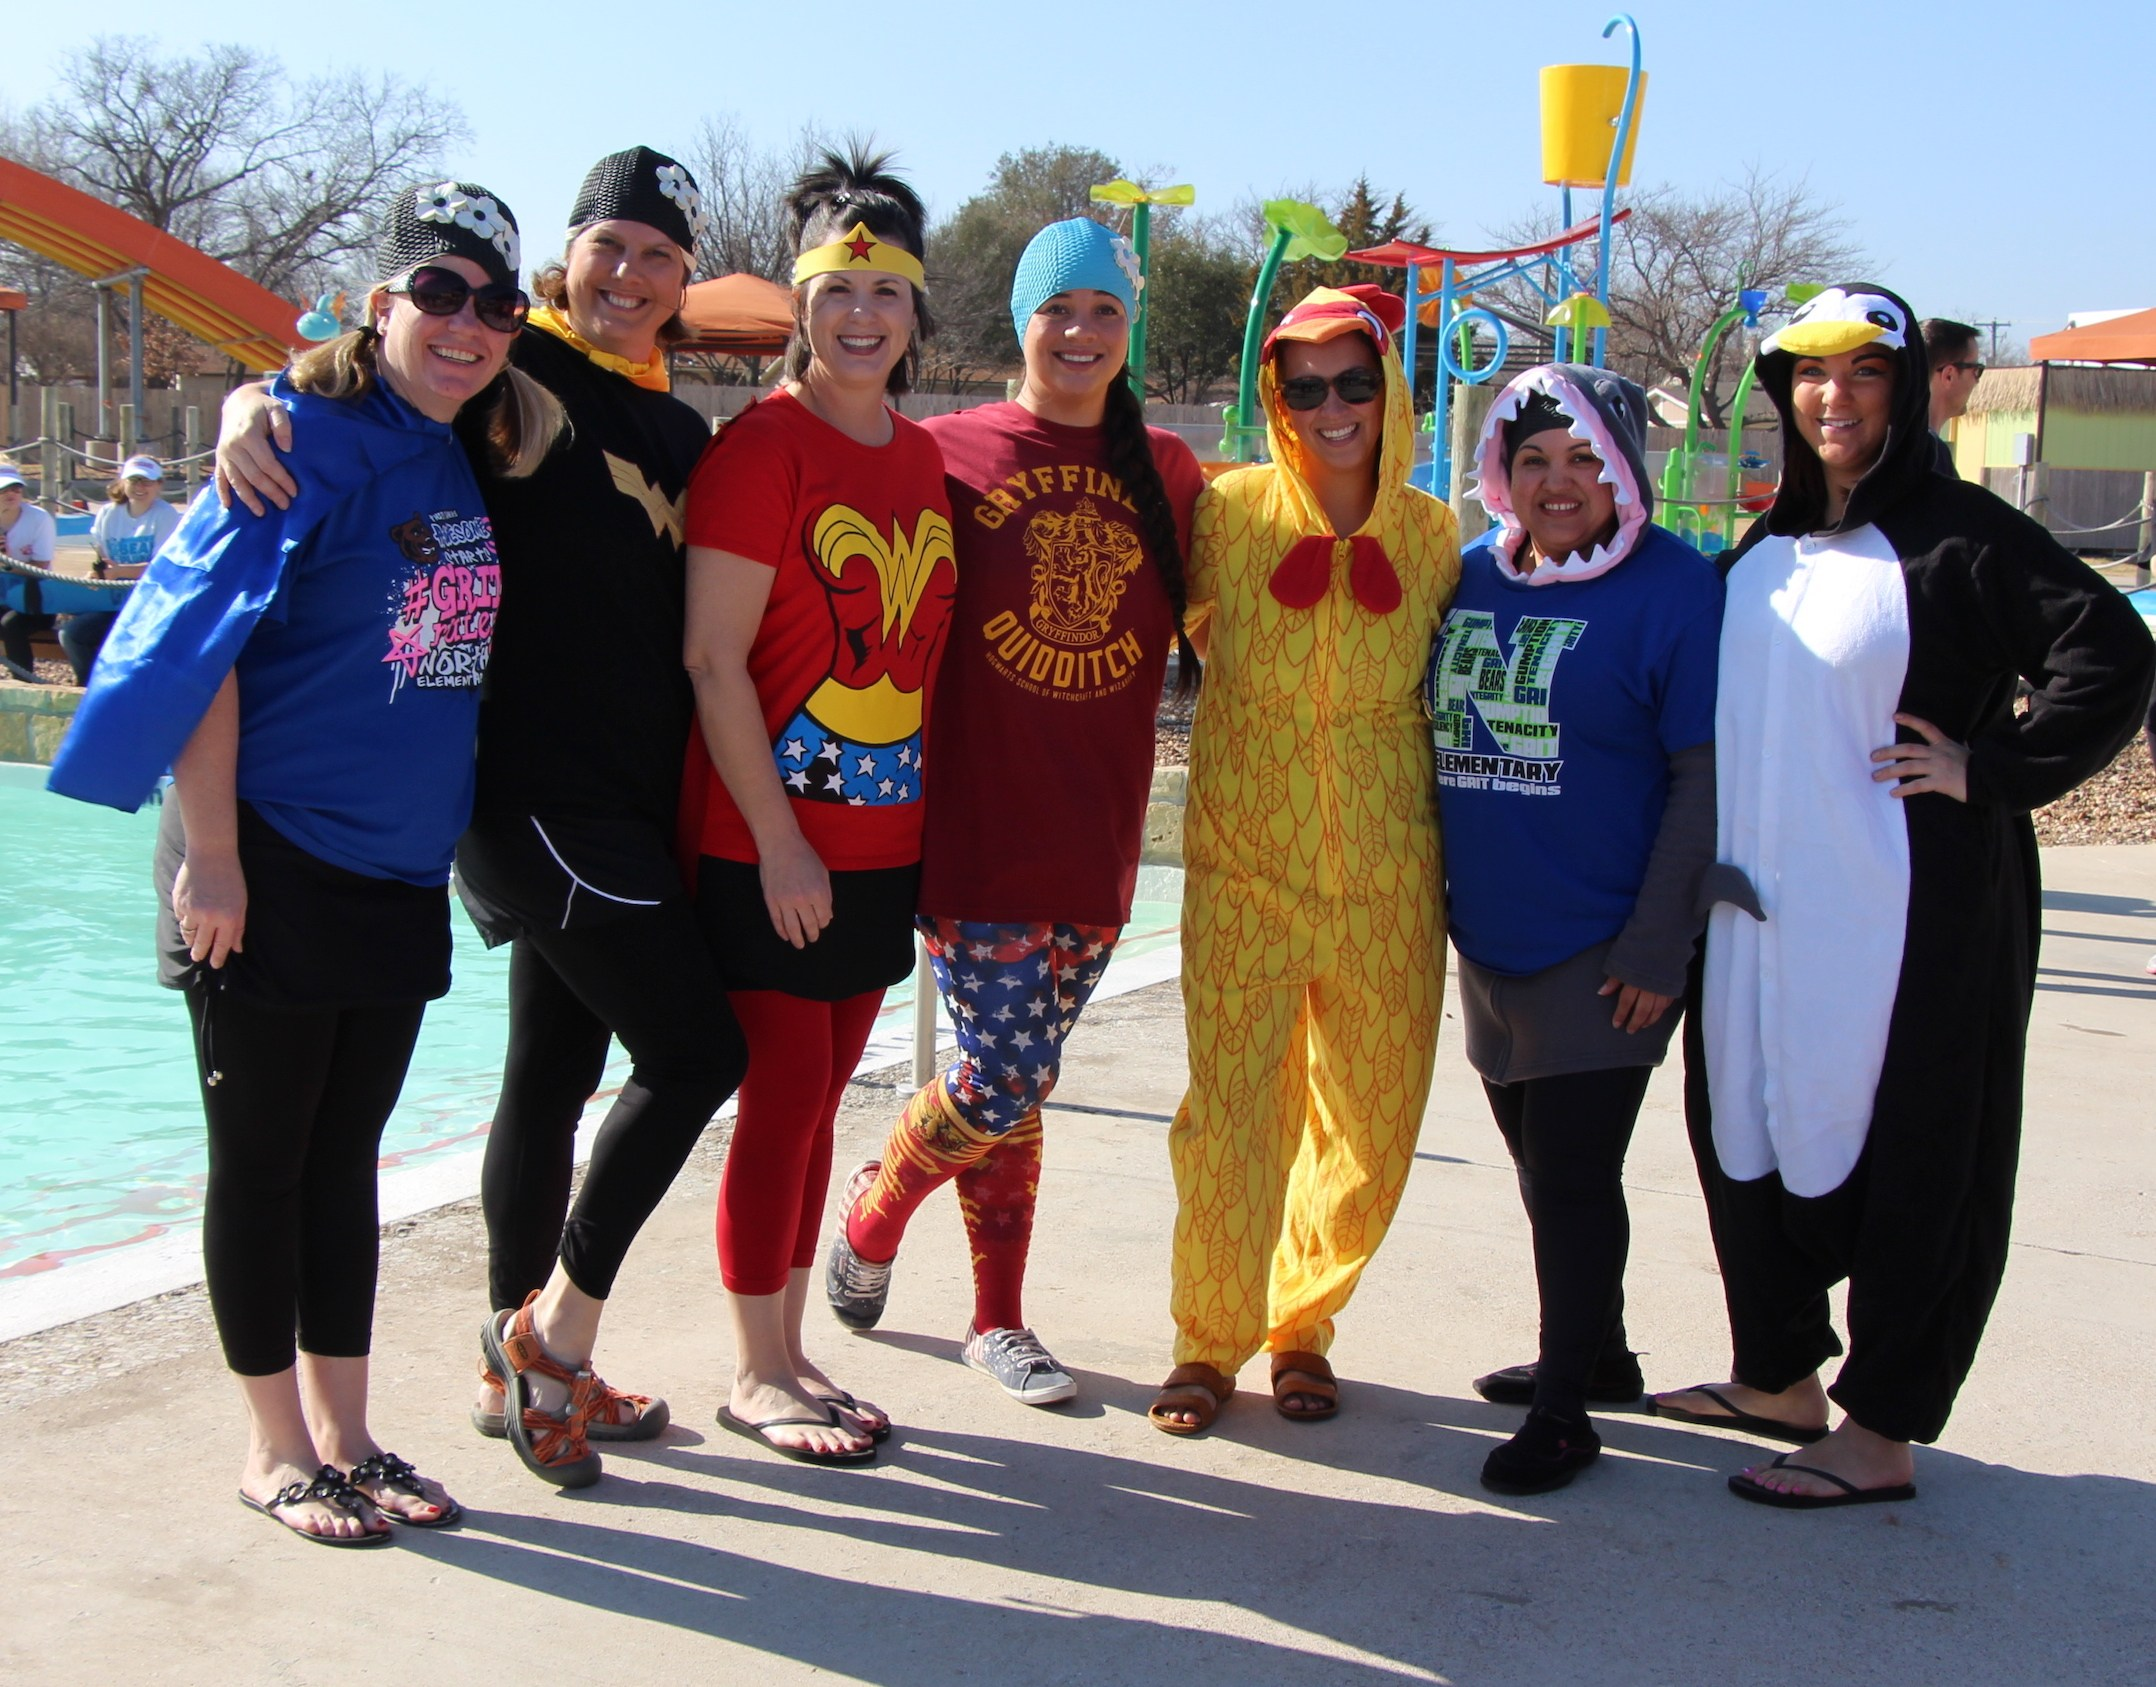 The North Elementary team won second place in the BRRRewer Bear Plunge Costume Contest.